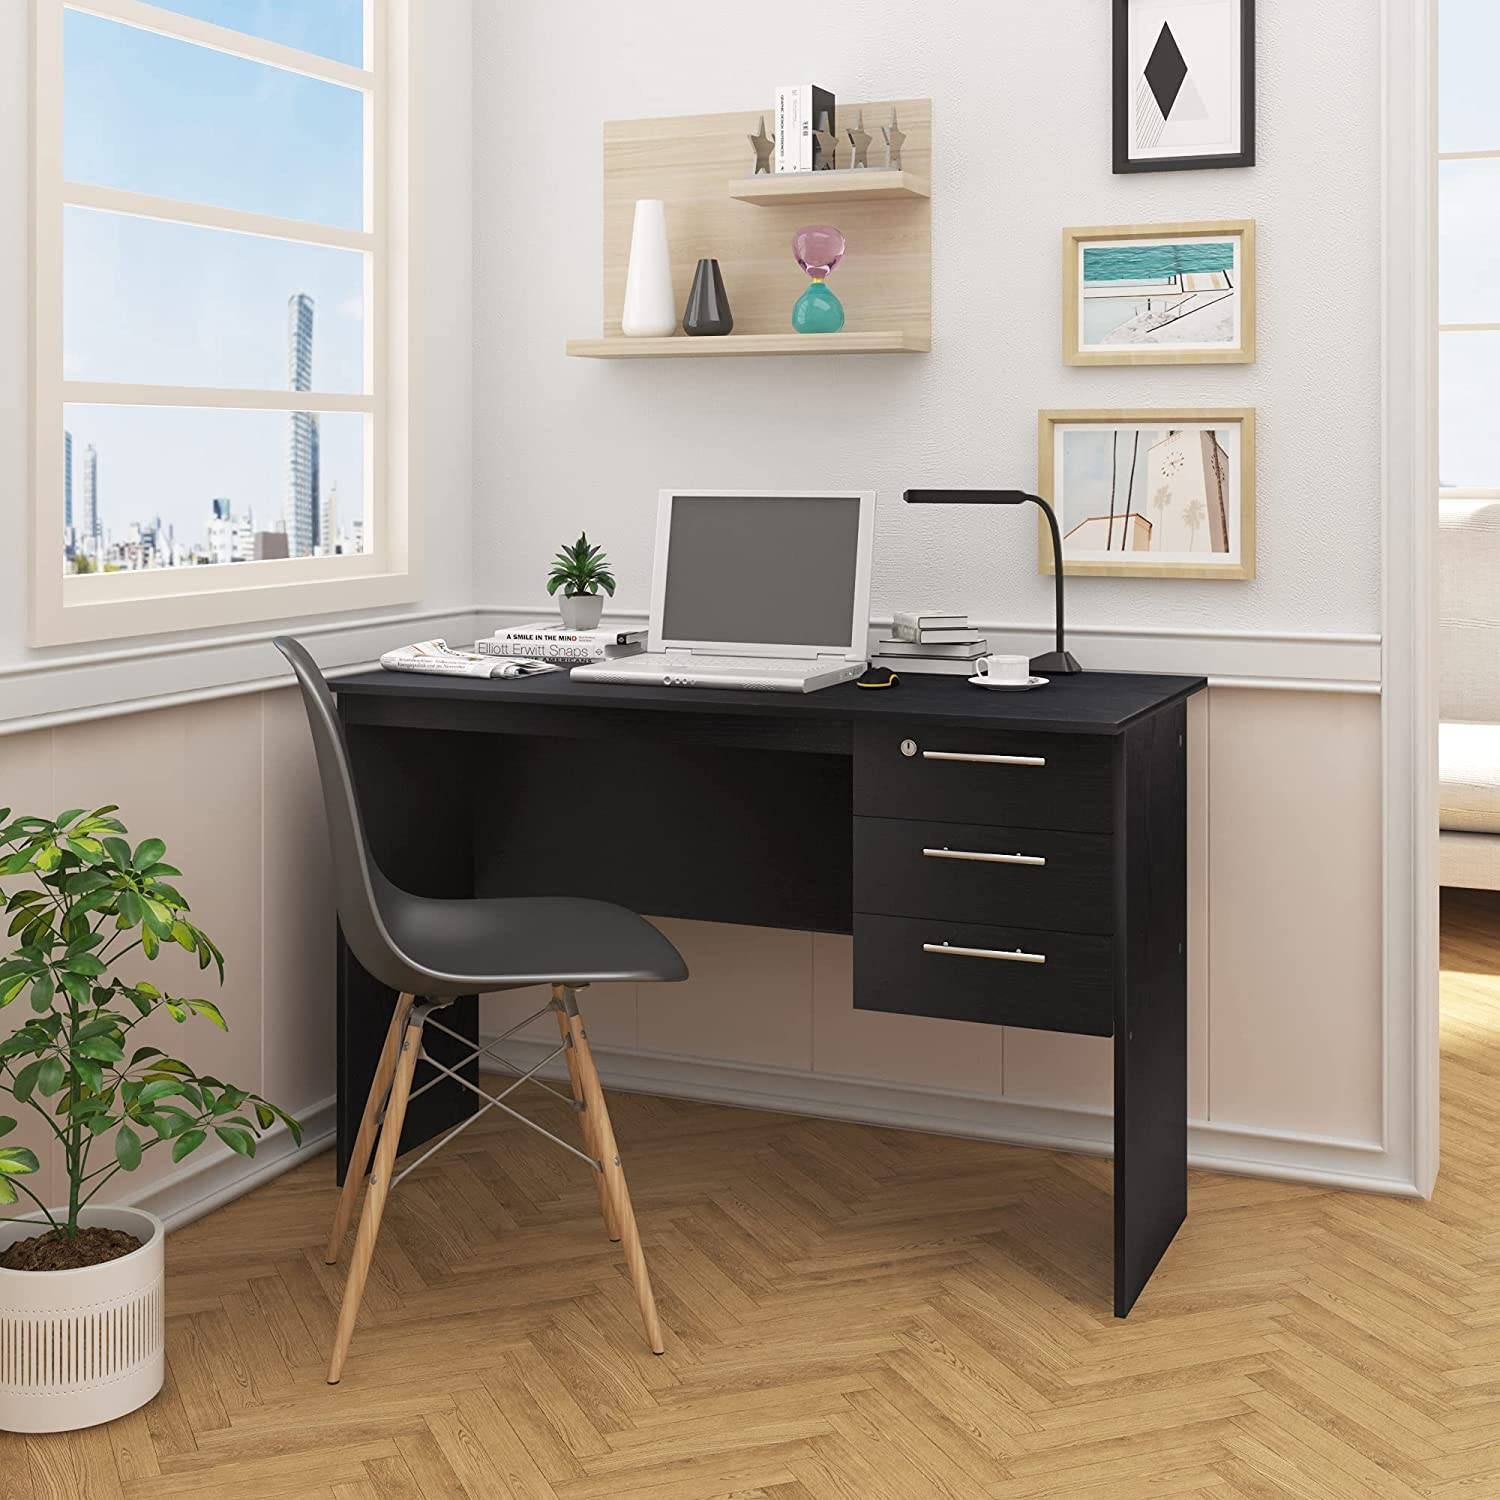 - Wooden Desk With 3 Drawers And Lock - Model Jan Woltu.eu